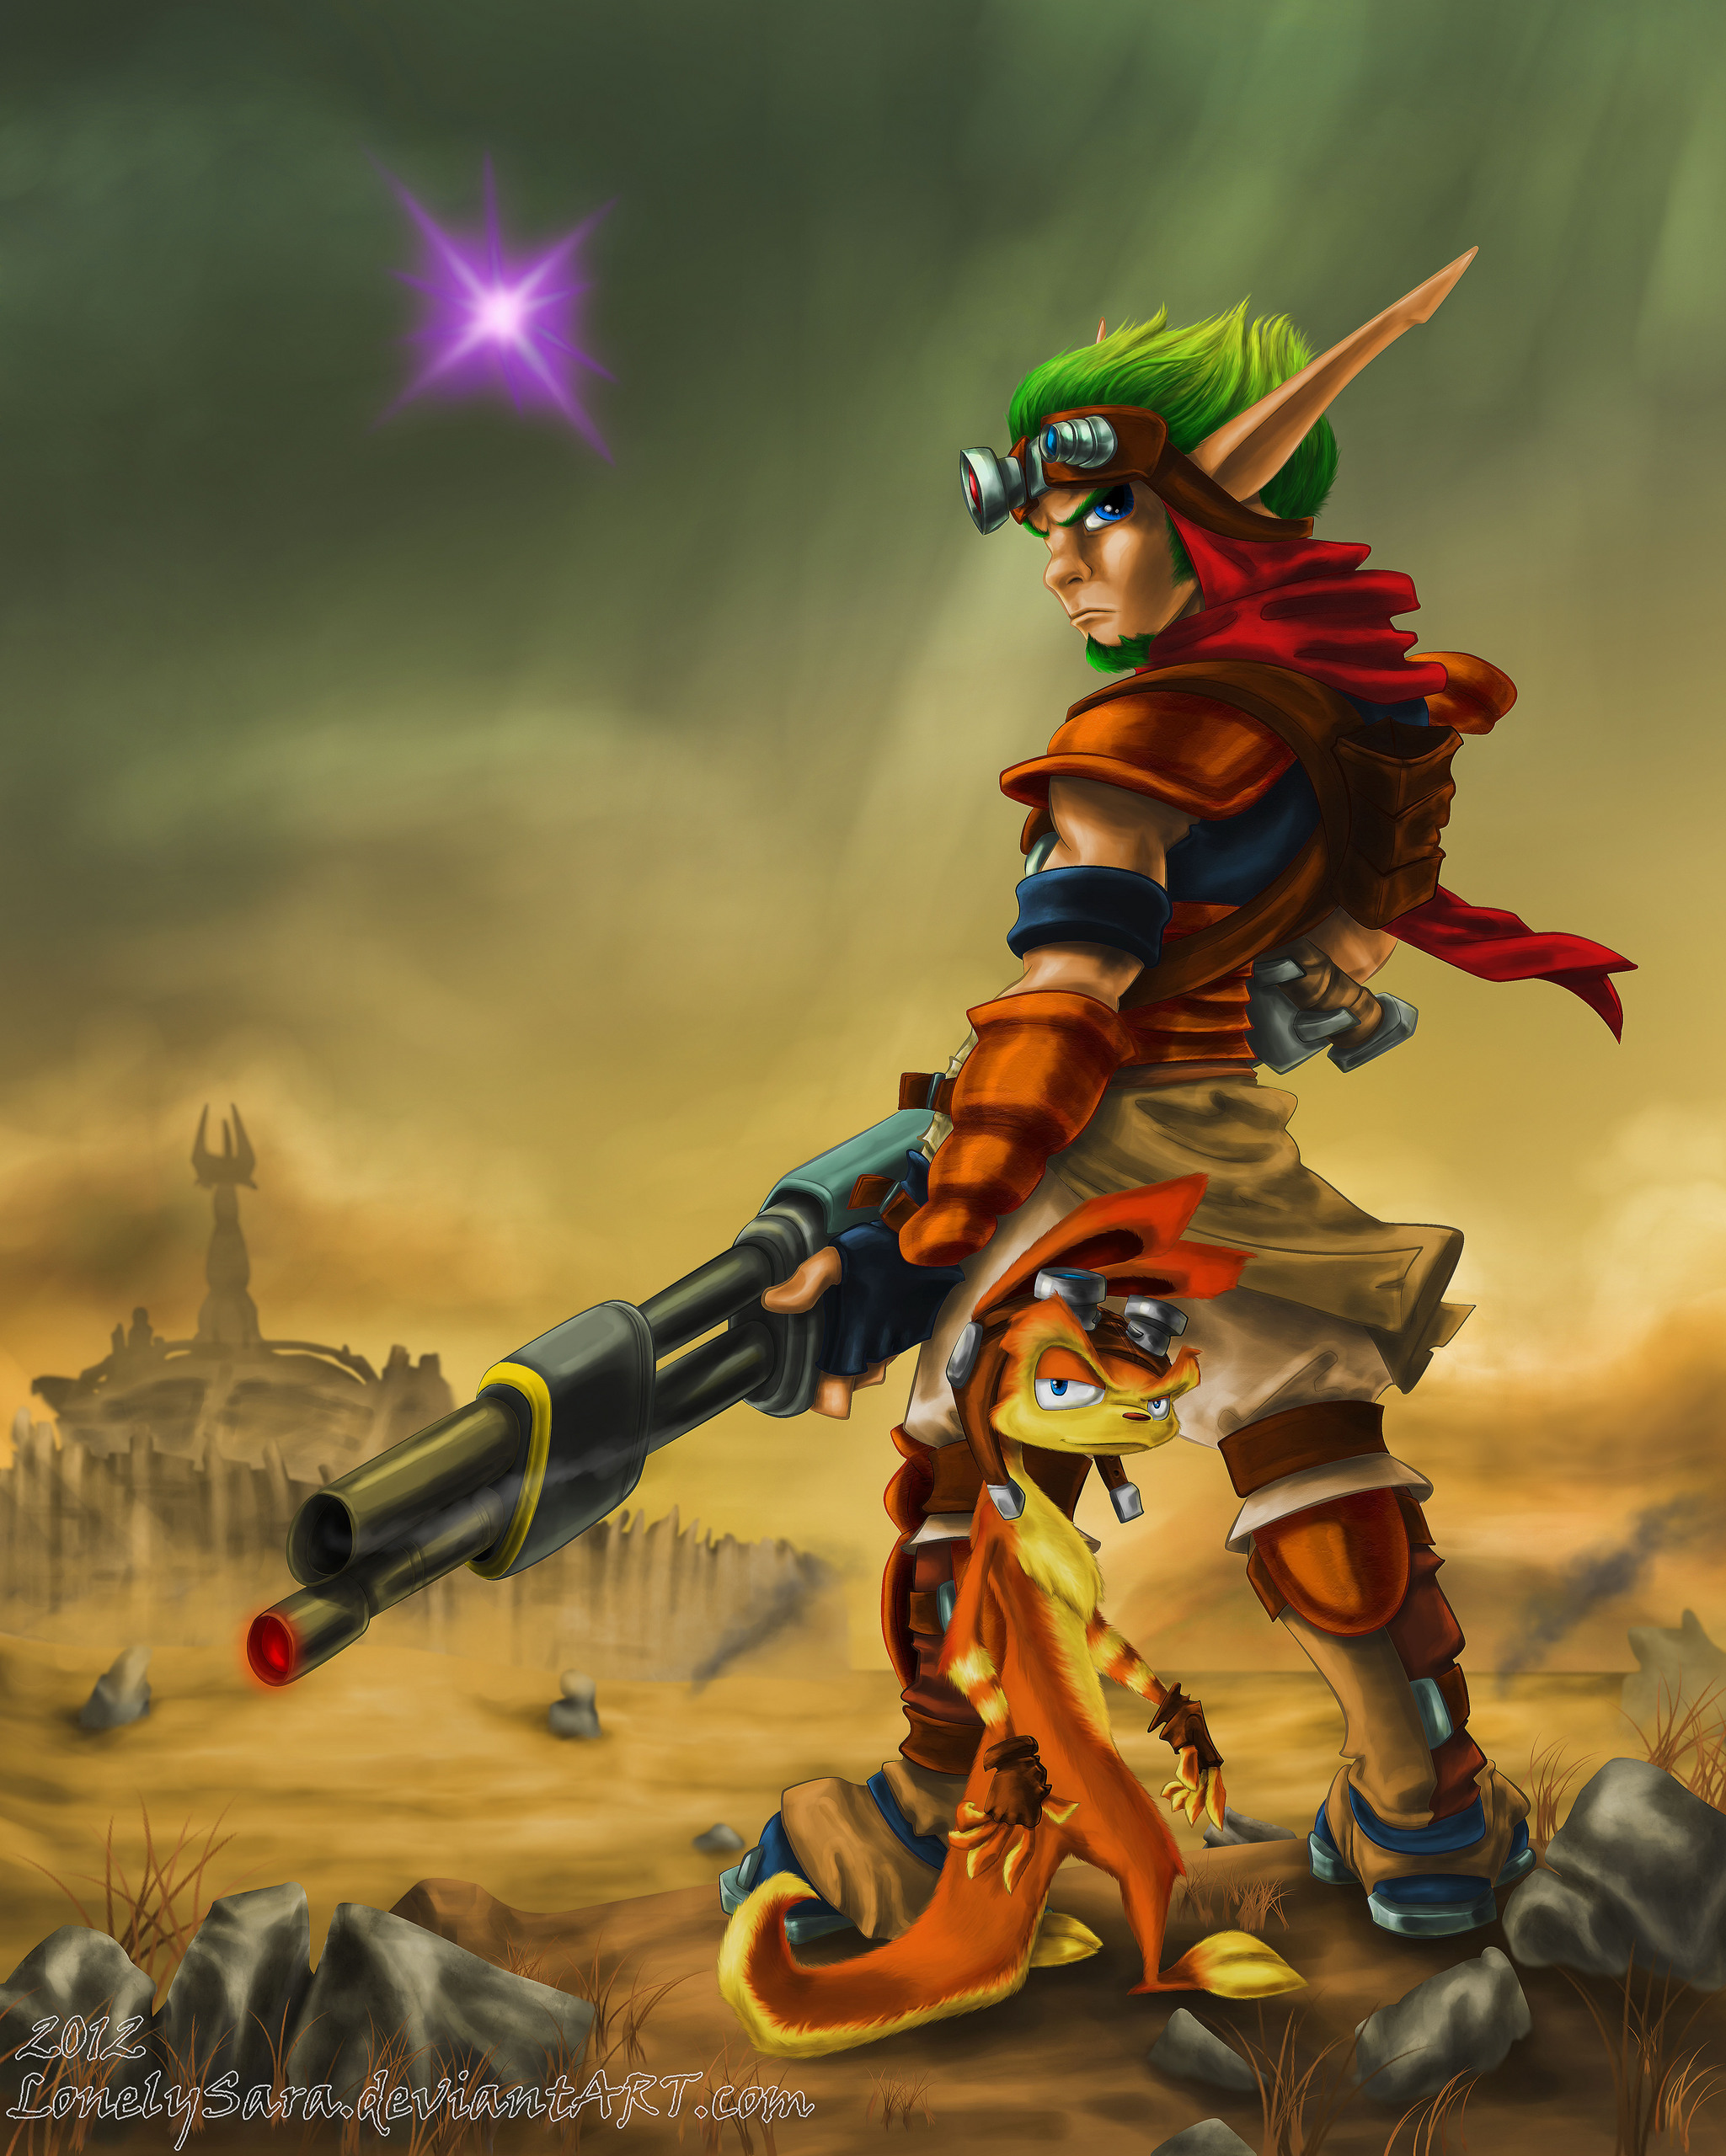 daxter images hd wallpaper - photo #13